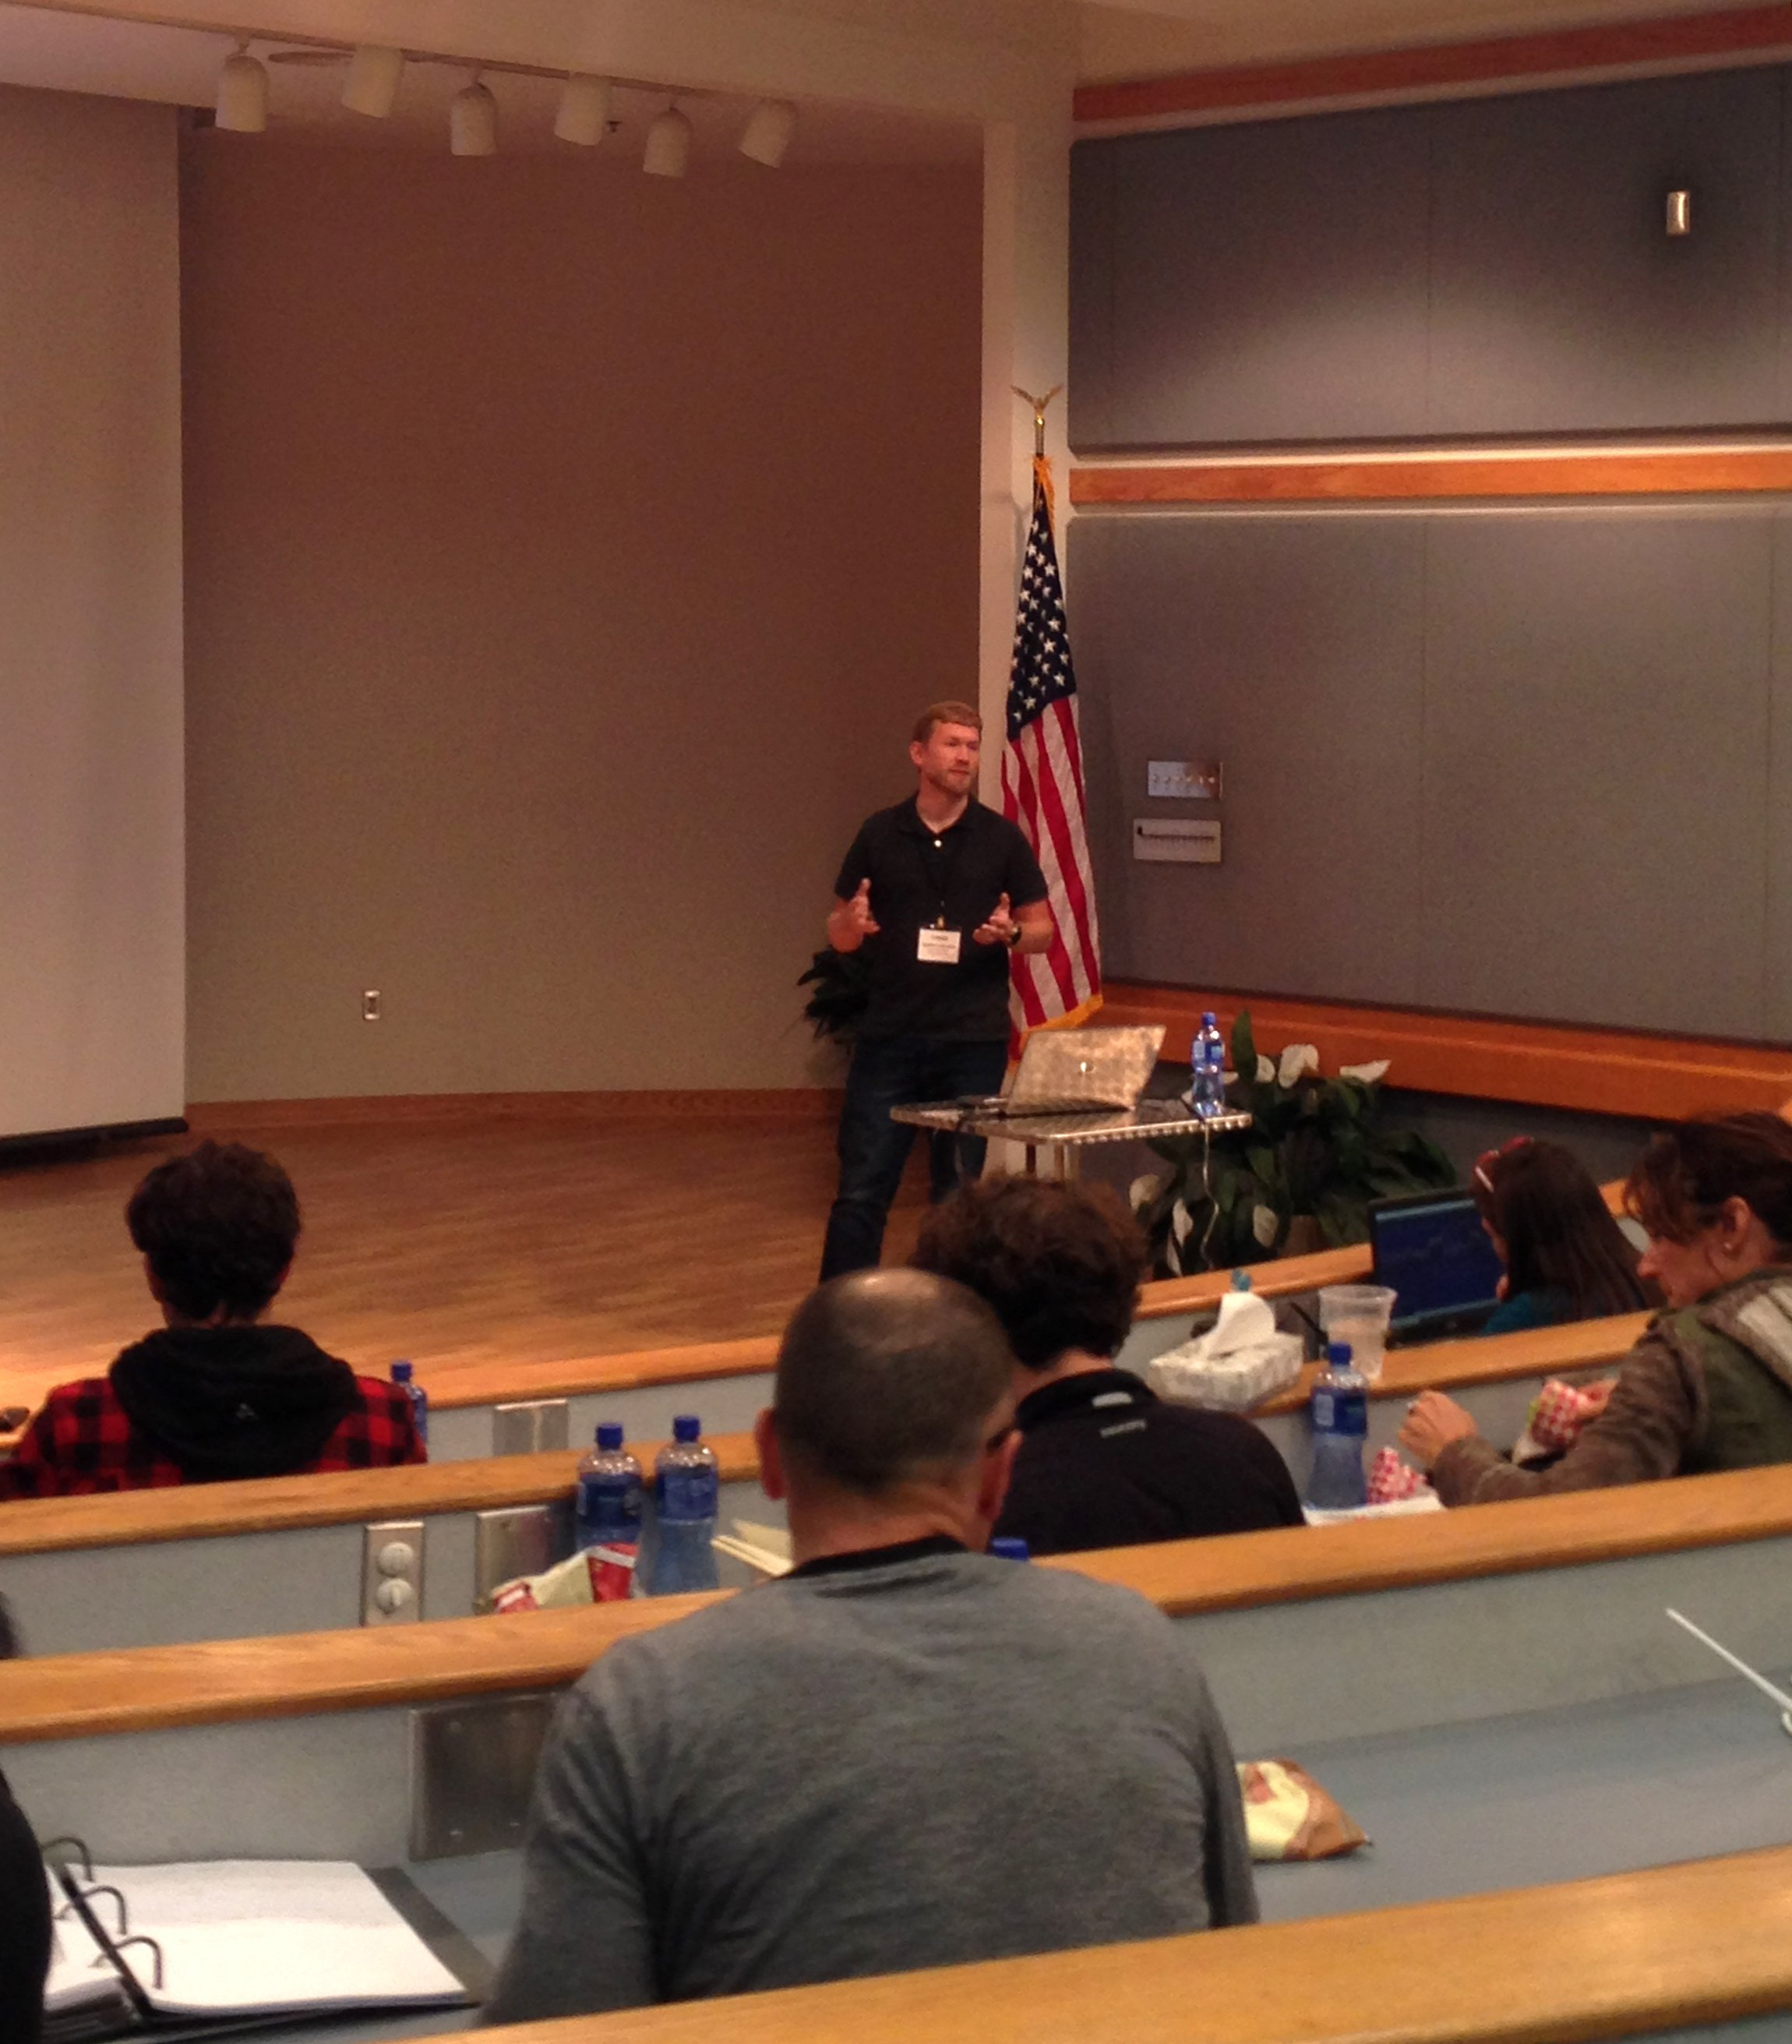 Kenny Carlson speaking at the 2016 ITP4ES conference